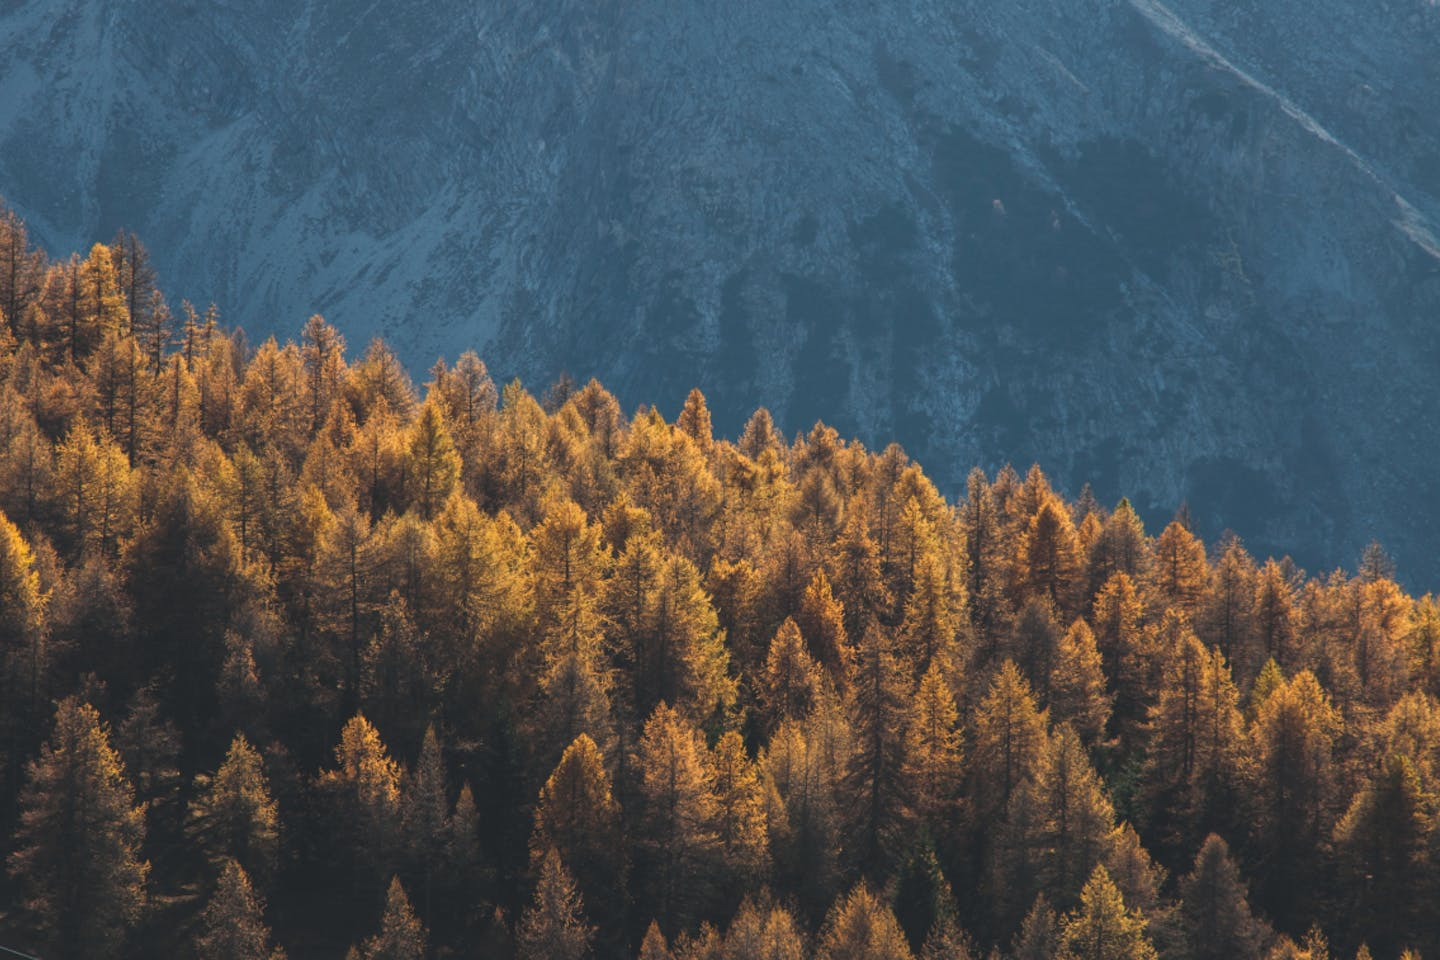 generic forests image